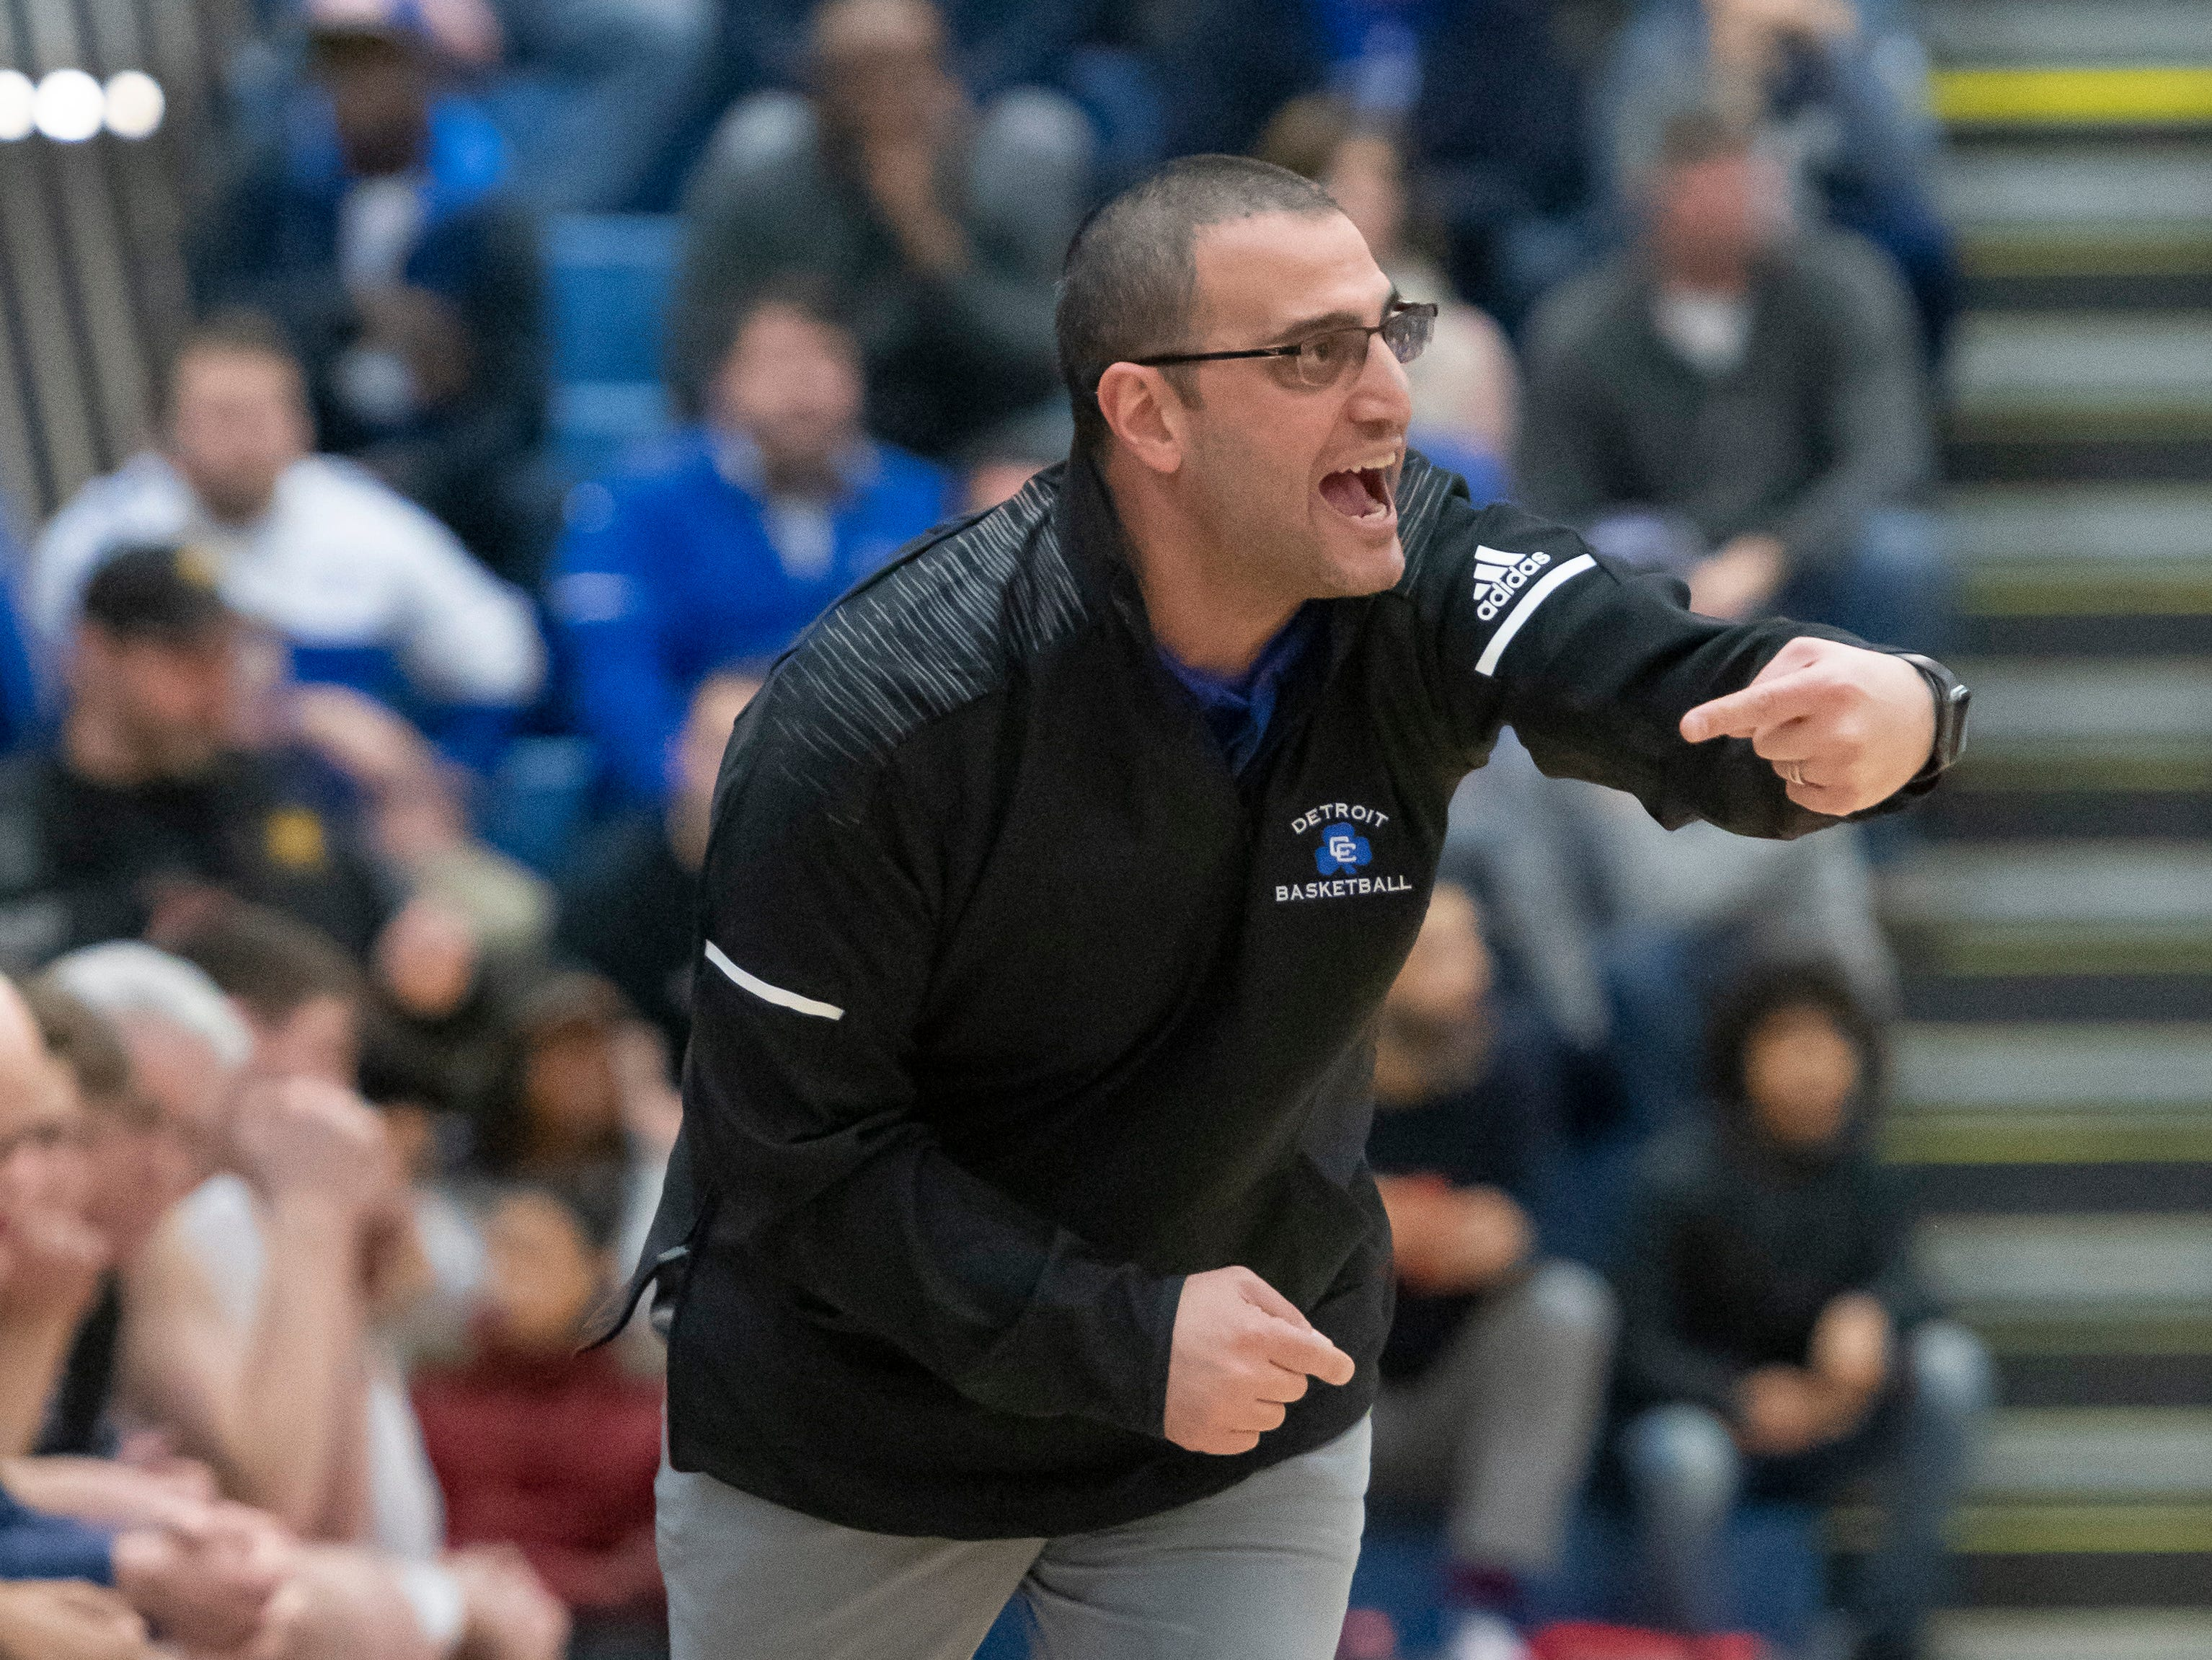 Detroit Catholic Central's head coach Brandon Sinawi yells to his players during the first half.